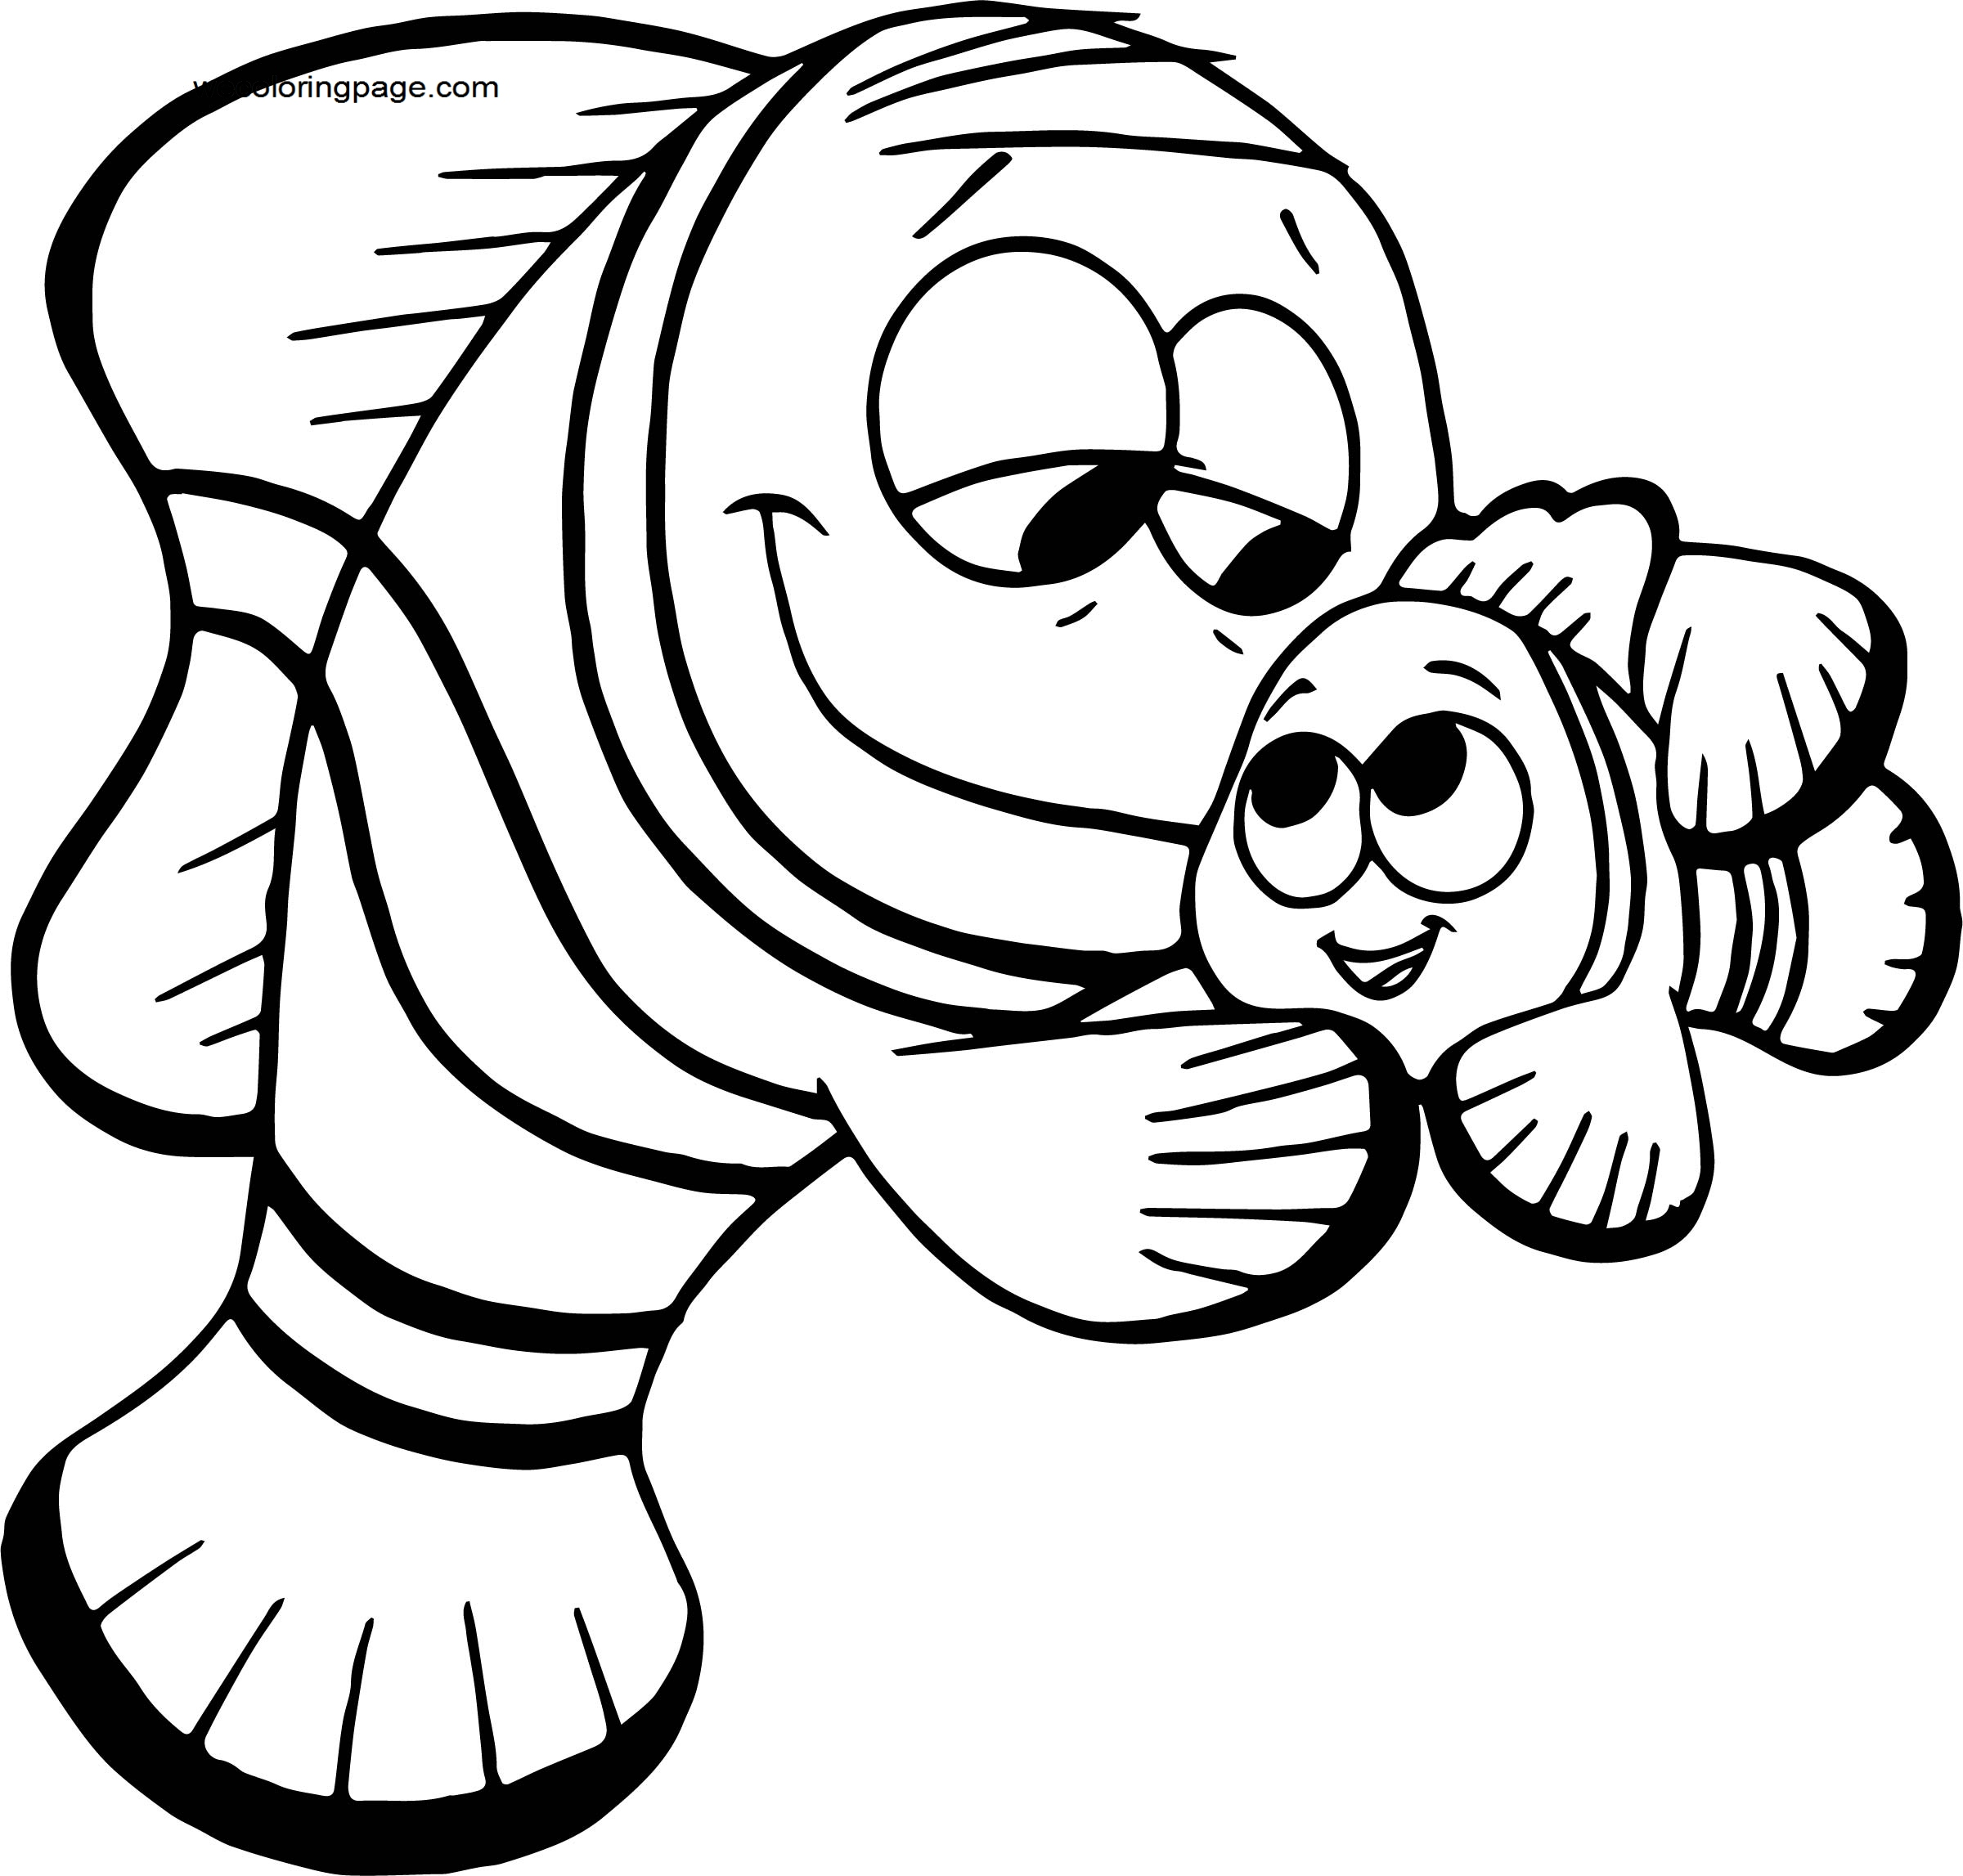 Disney Finding Nemonemo marlin Coloring Pages